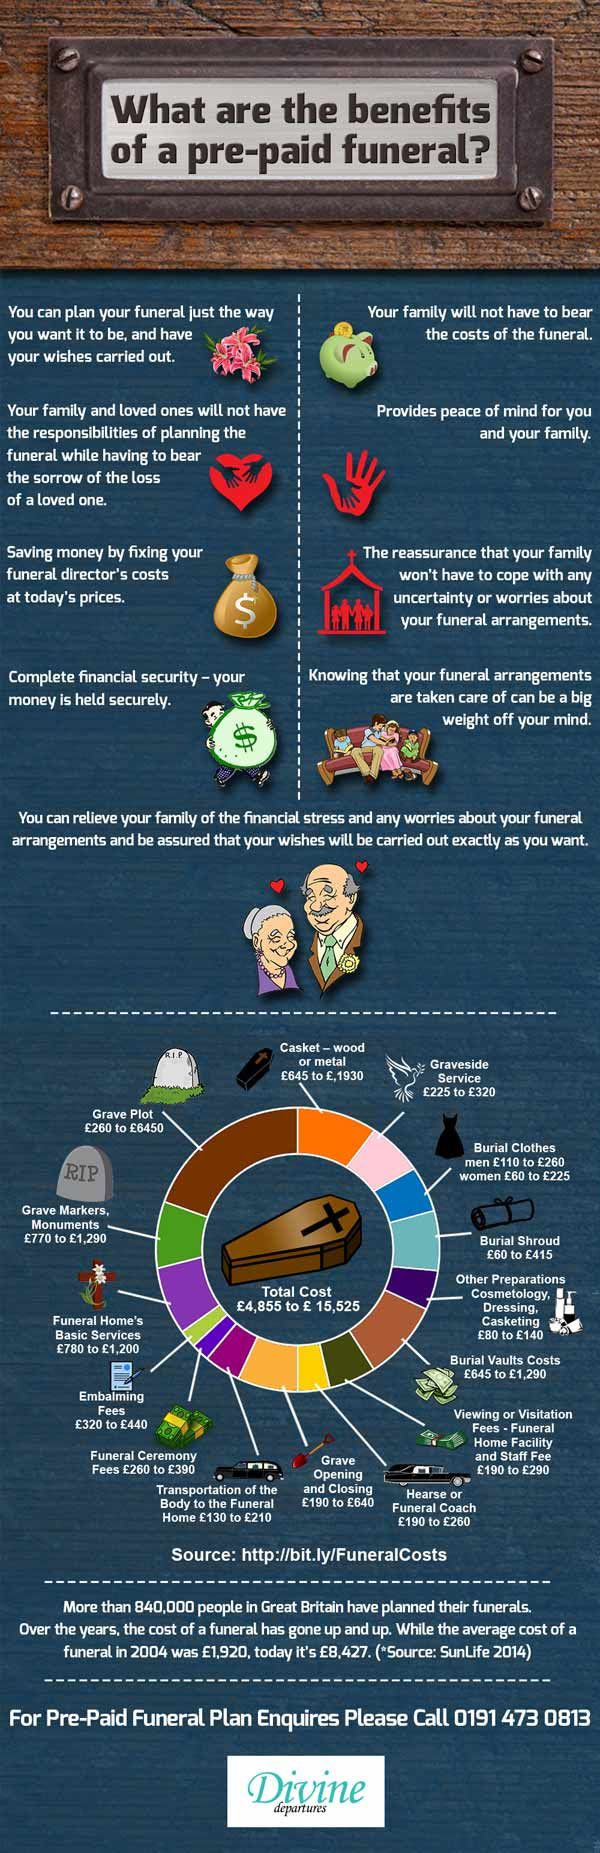 prepaid funeral plans info graphic image                              …